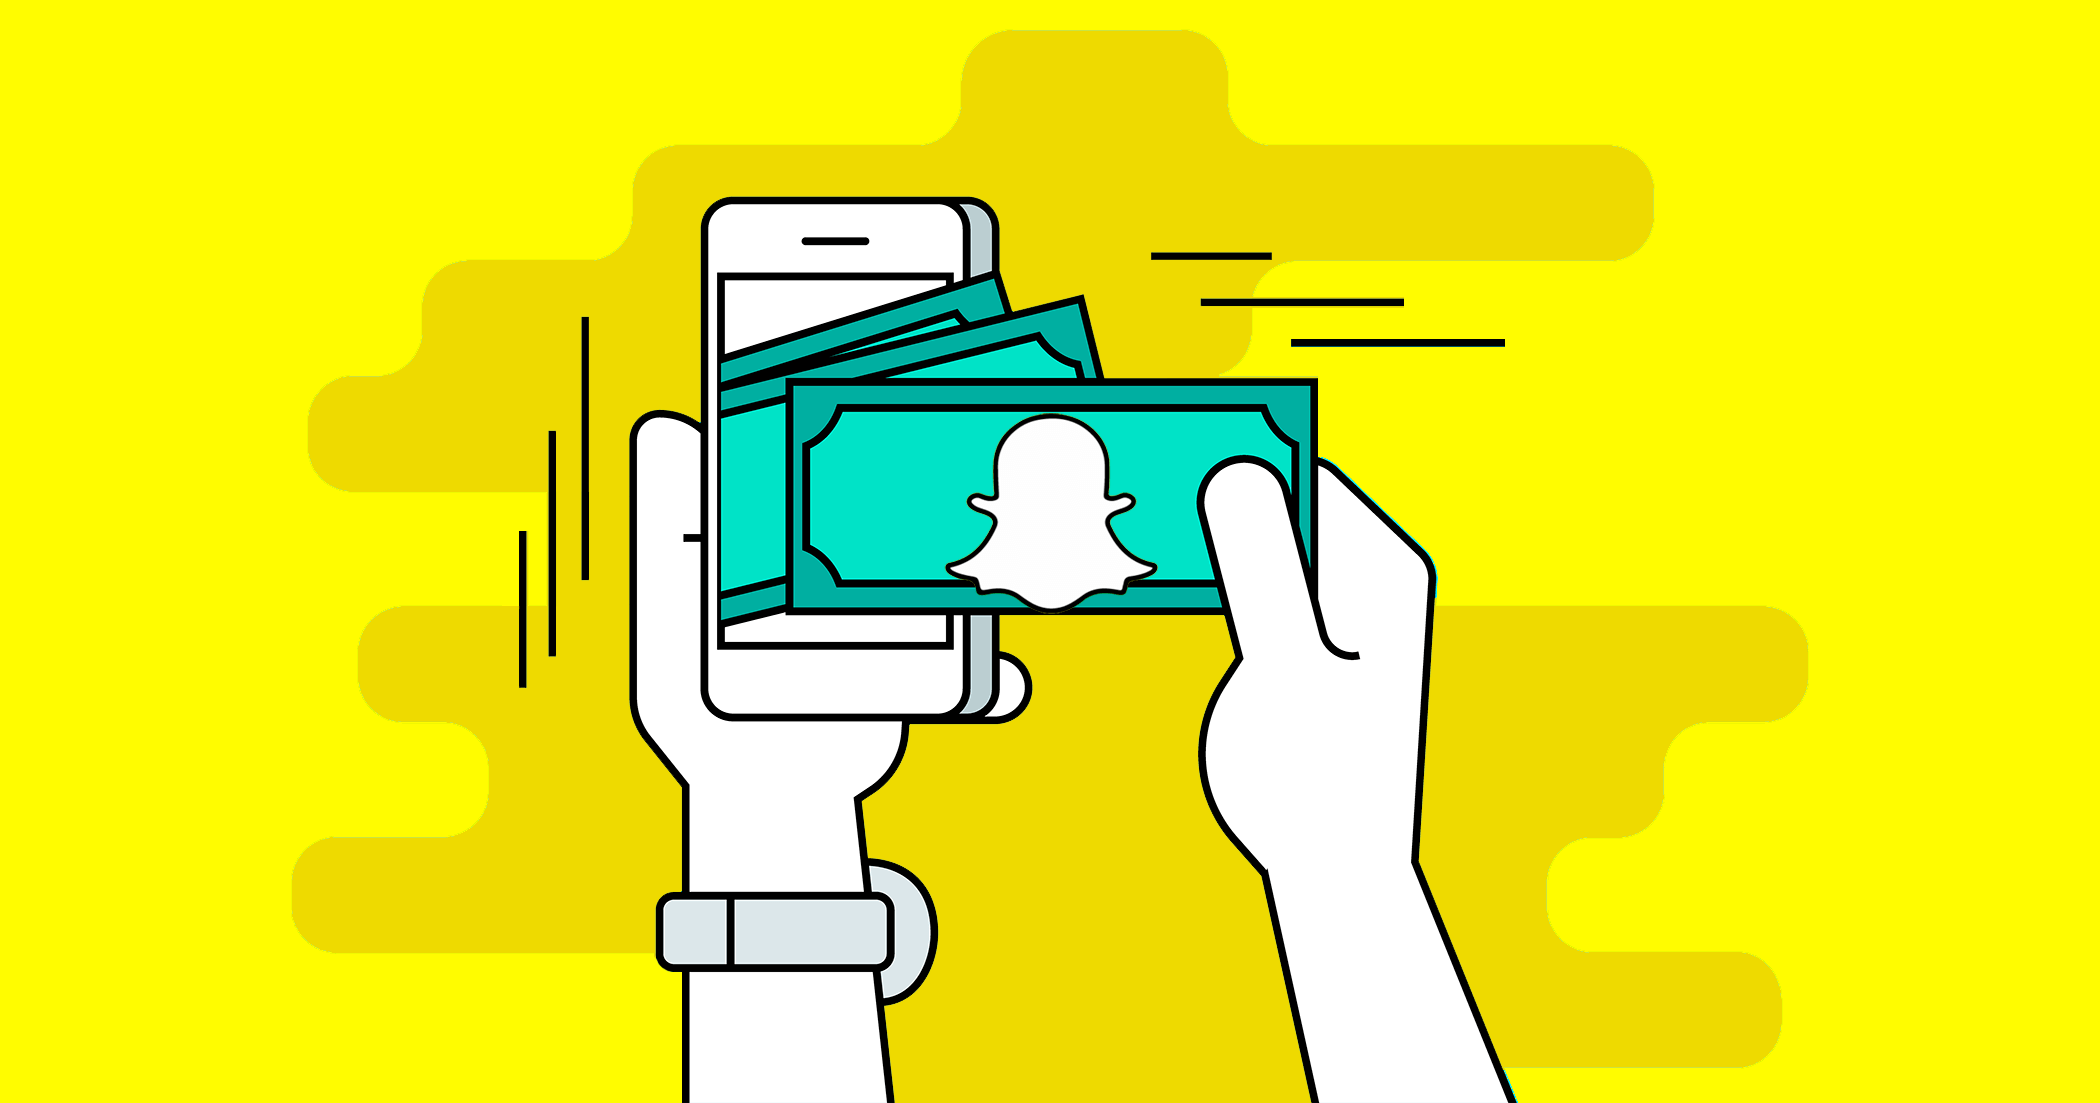 Best monetization ideas for Snapchat messenger in 2019.